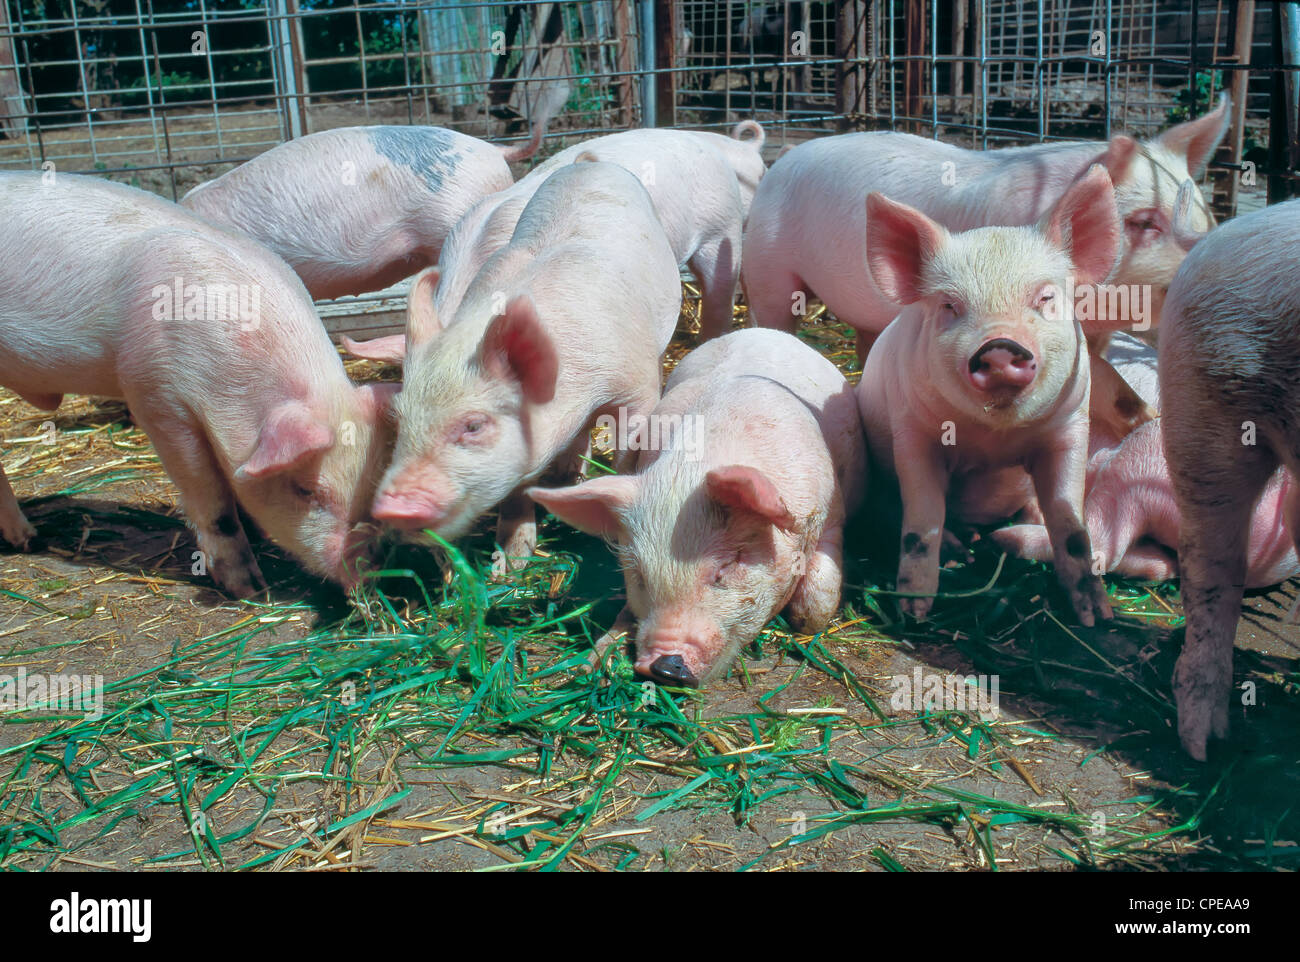 Juvenile hogs 'Yorkshire' feeding in pen. - Stock Image